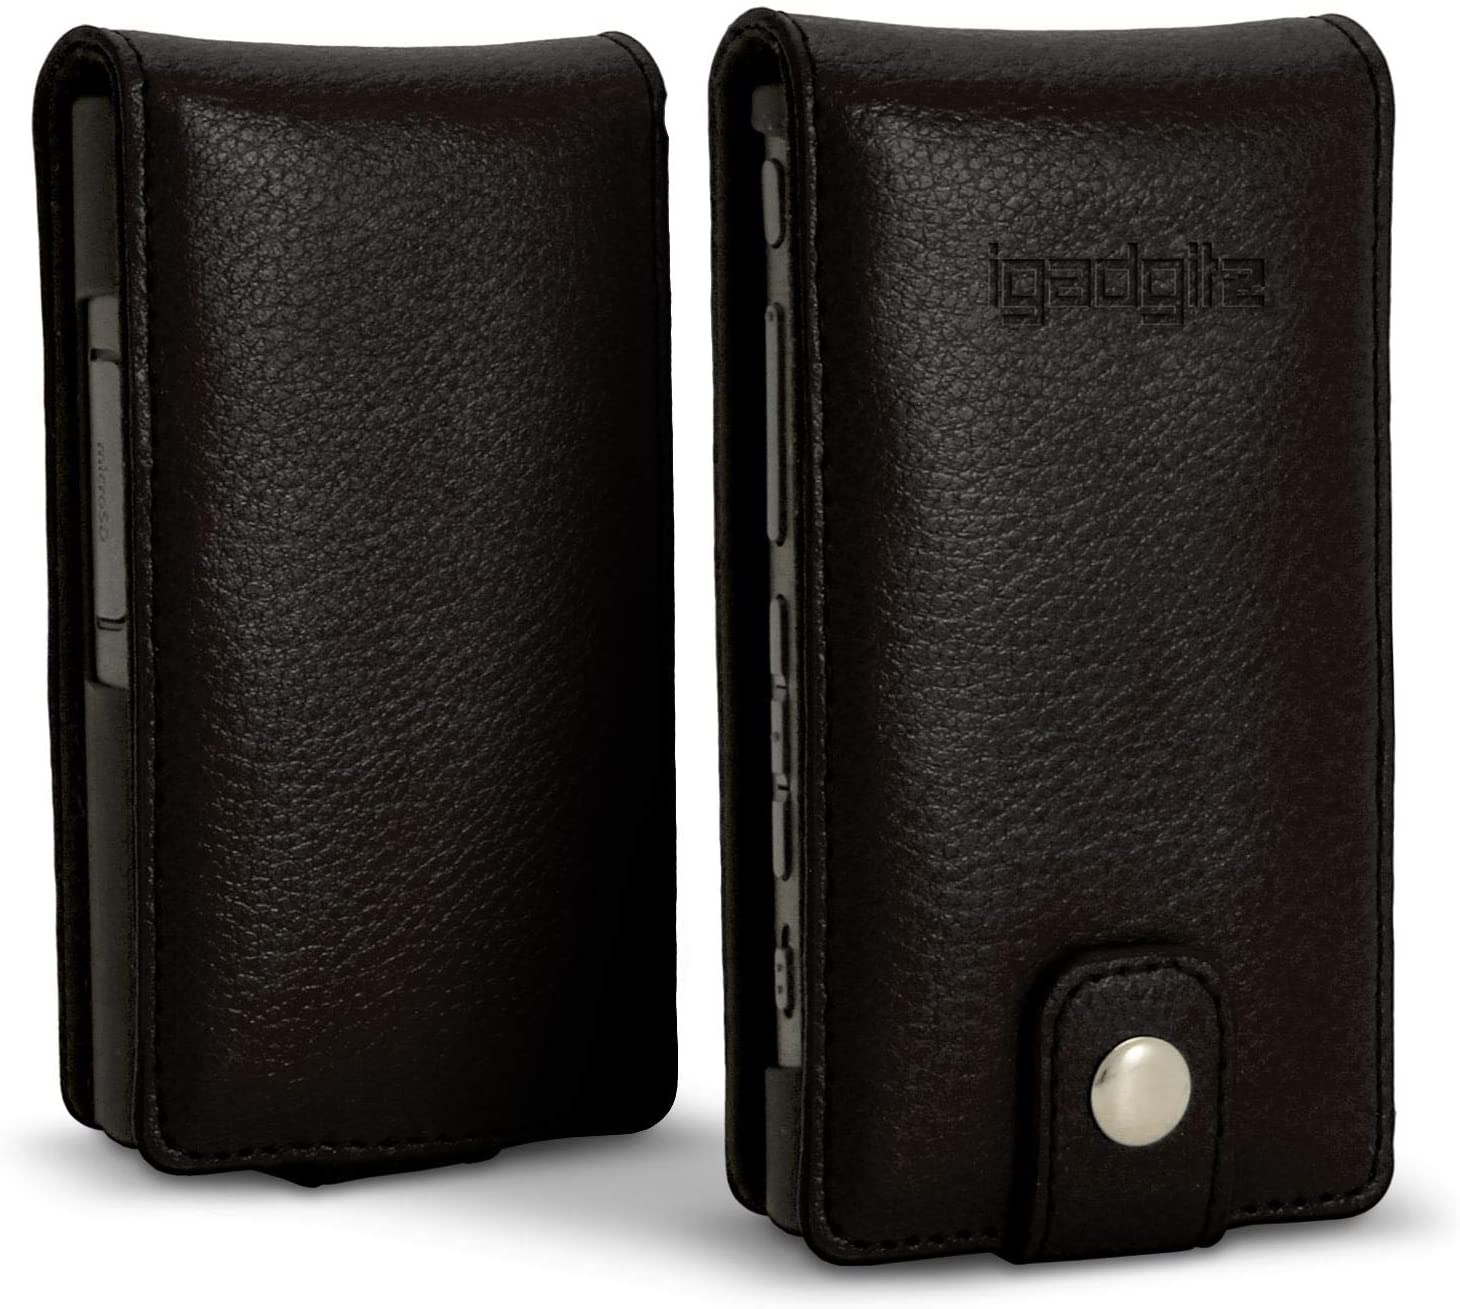 Regular discount iGadgitz U6340 Leather Flip Case with and Magnetic Closure Cover Max 71% OFF